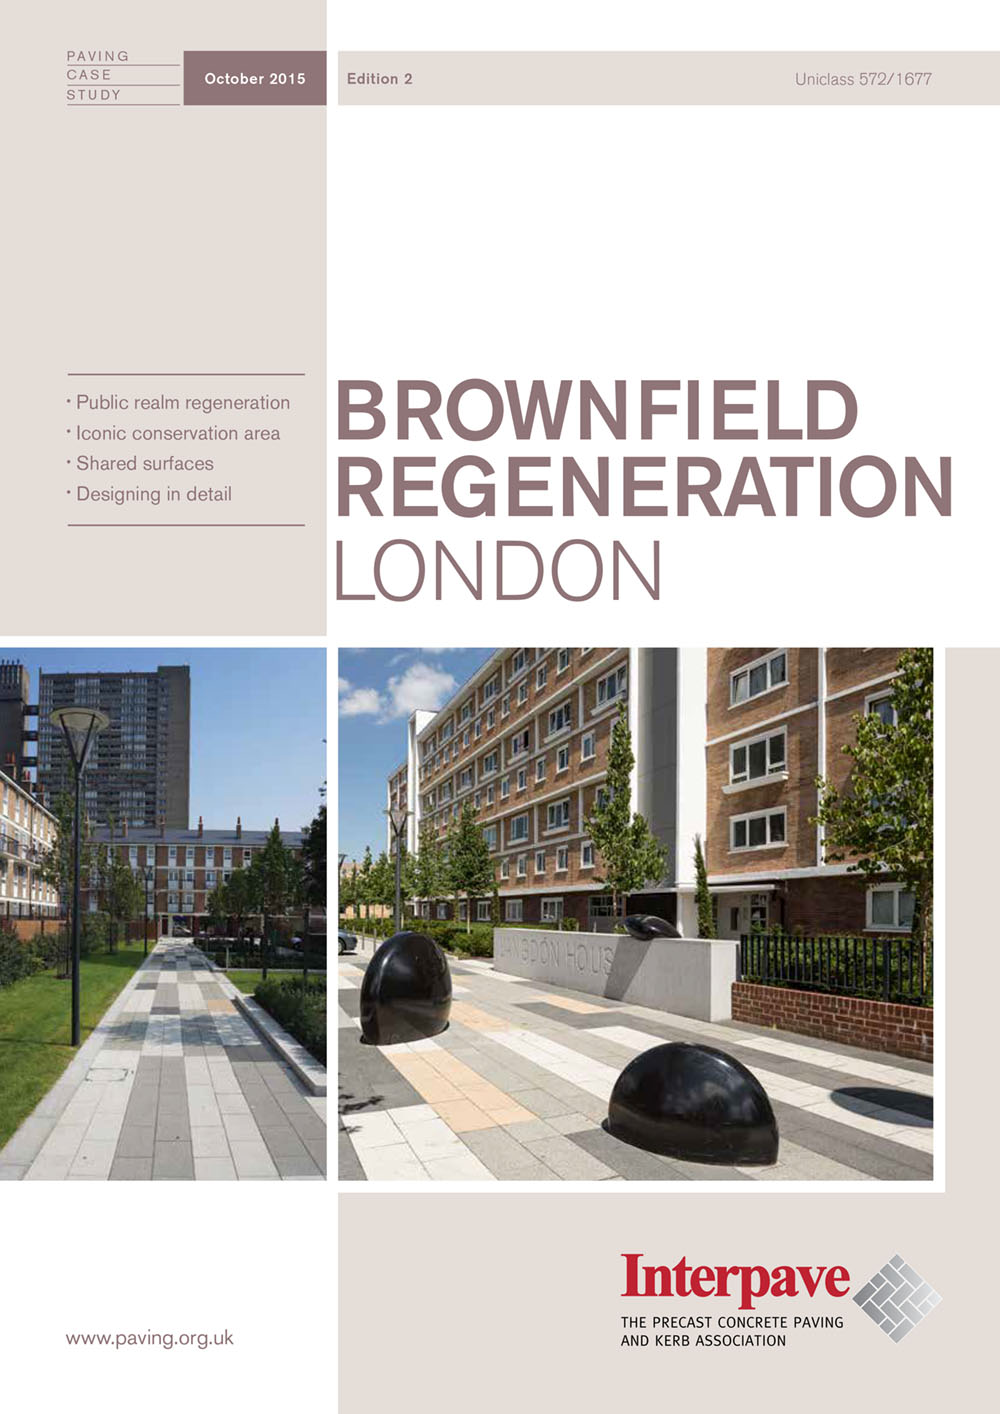 Brownfield Regeneration Case Study